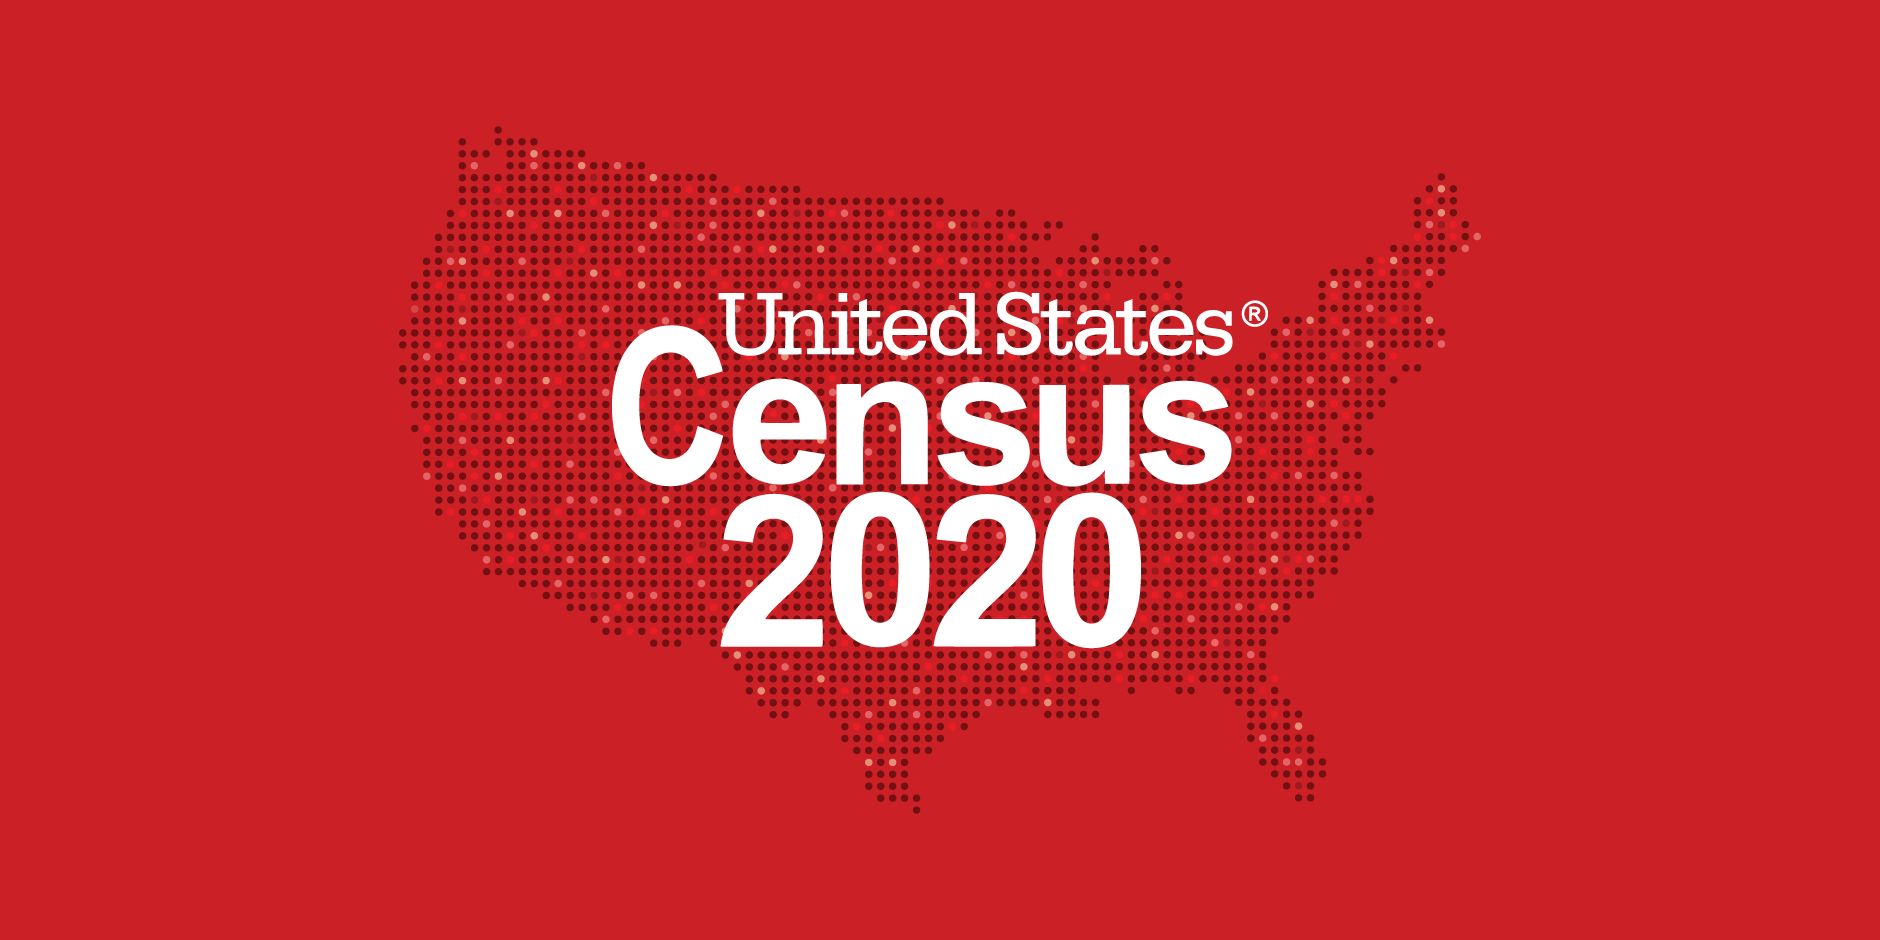 "The outline of the U.S. and the words ""United States Census 2020"" against a red background"